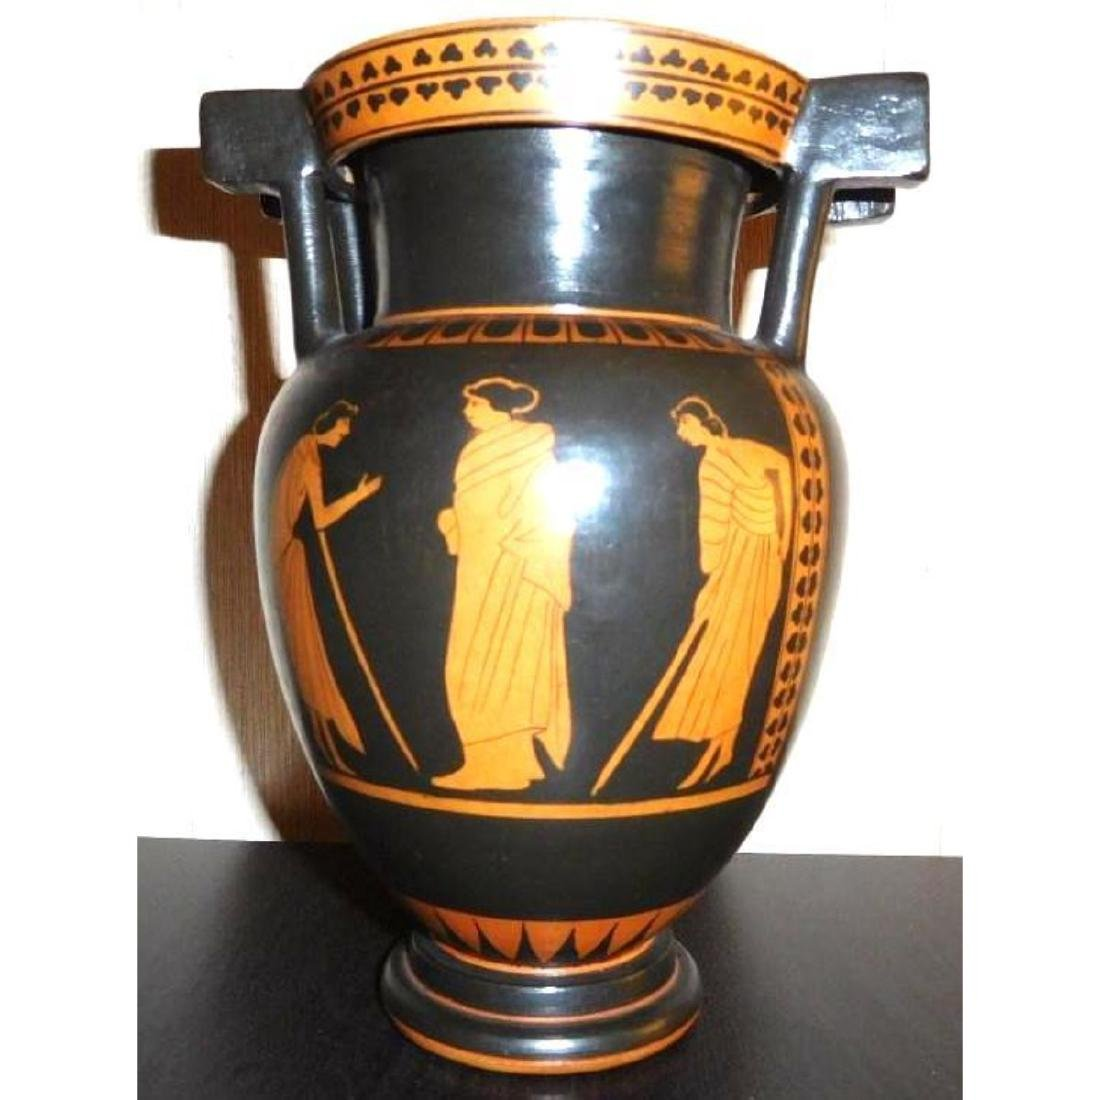 Modern Reproduction of an Ancient Greek Vase - 4